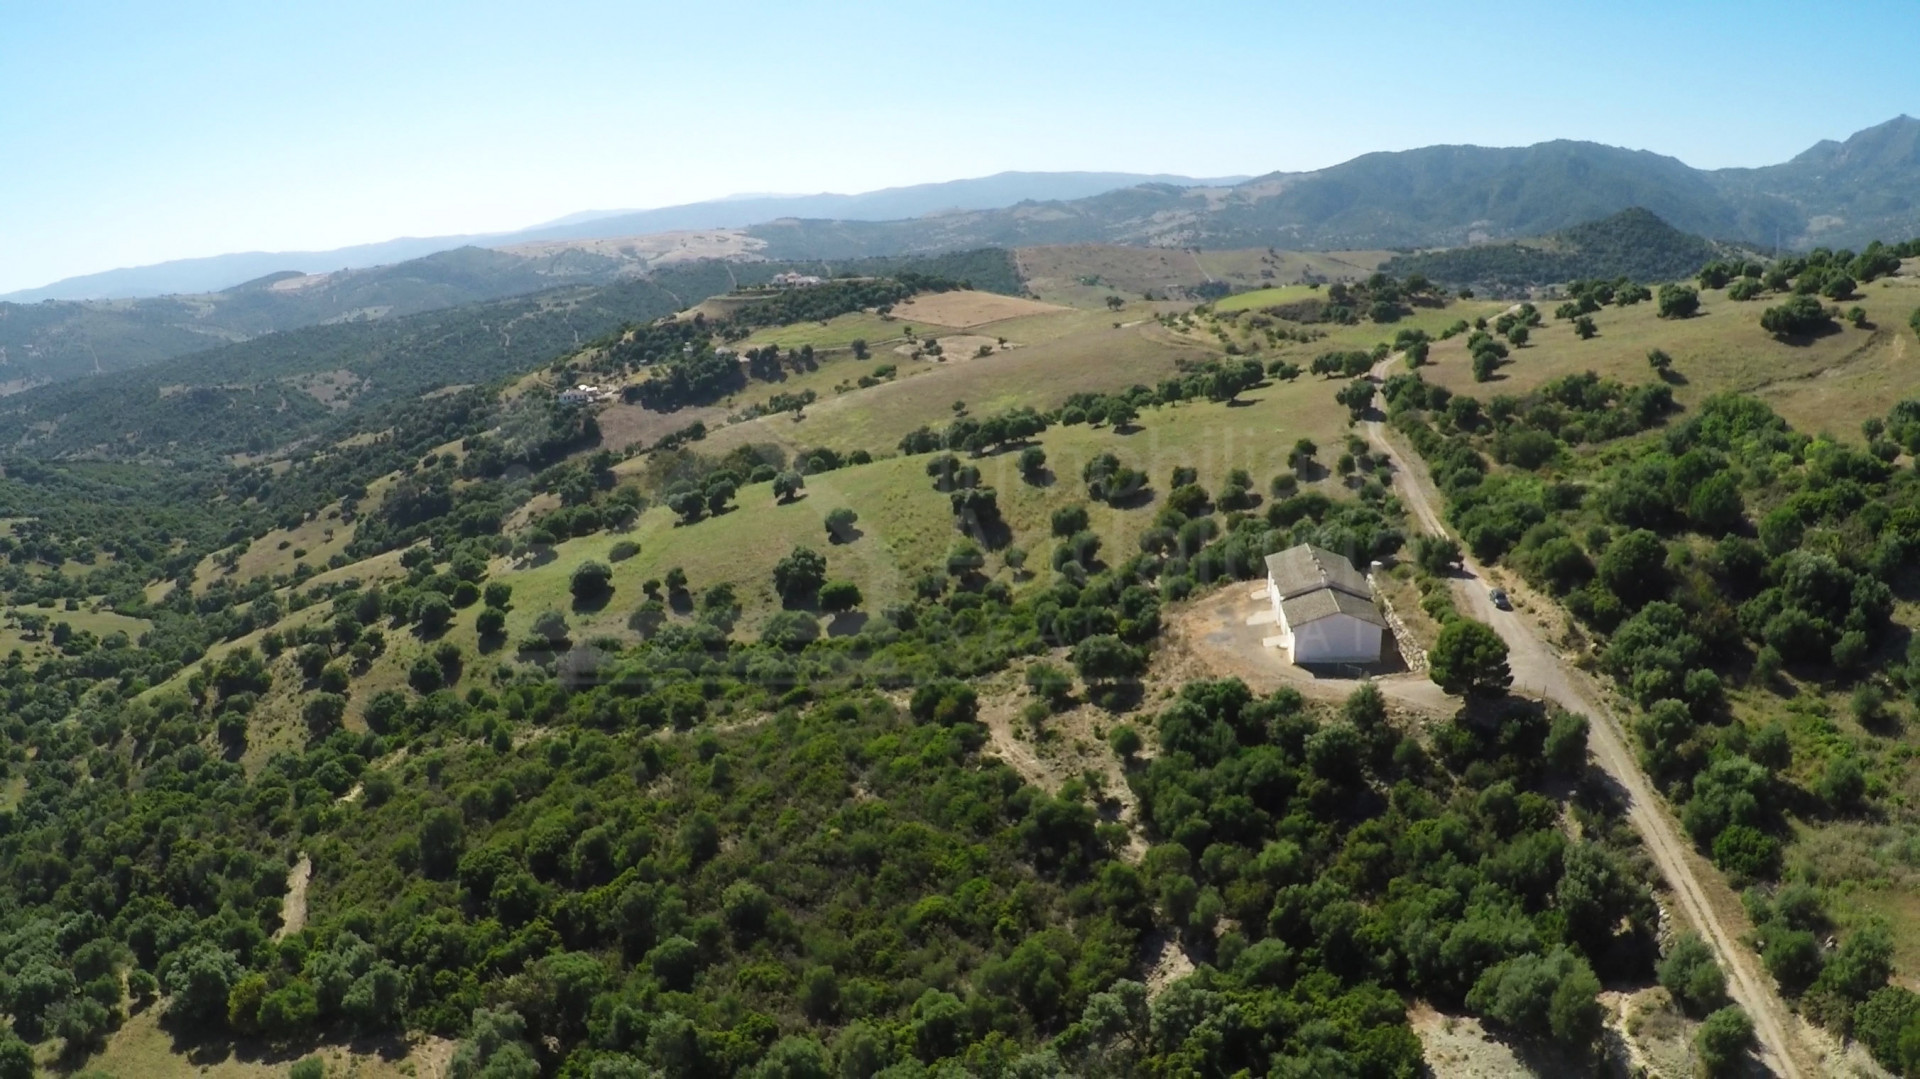 240.000m2 farm for sale in Casares, ideal for equestrian activities